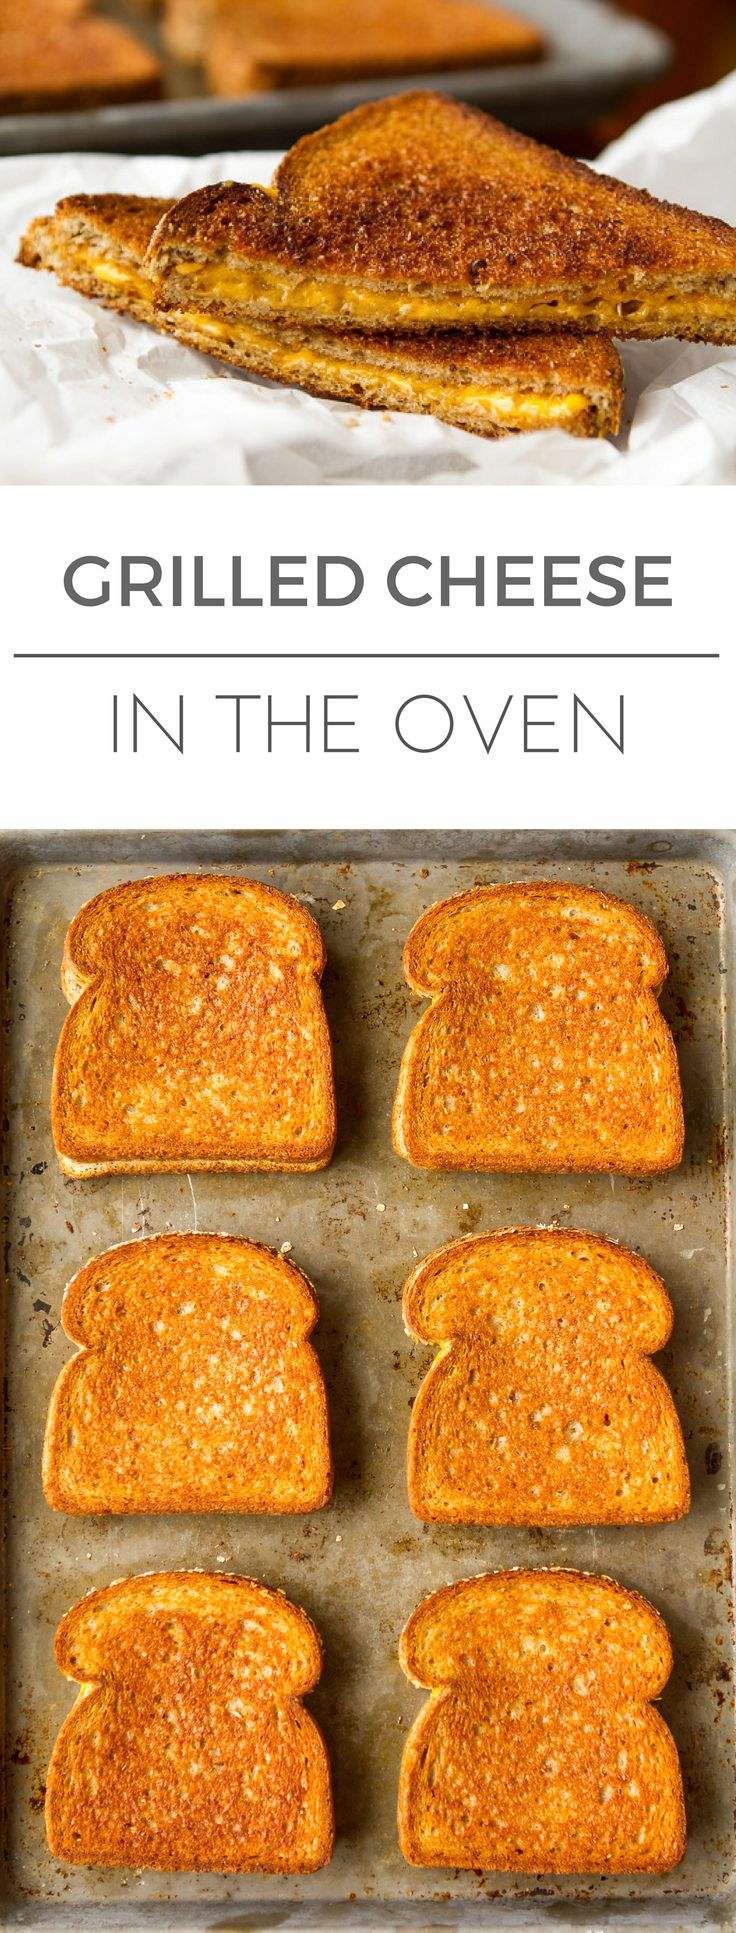 Grilled Cheese in the Oven -- this simple method makes 6 classic grilled cheese sandwiches per half sheet pan, hot and fresh from the oven, in just about 10 minutes! Perfect for pairing with your fave tomato soup recipe... | via @unsophisticook on unsophisticook.com